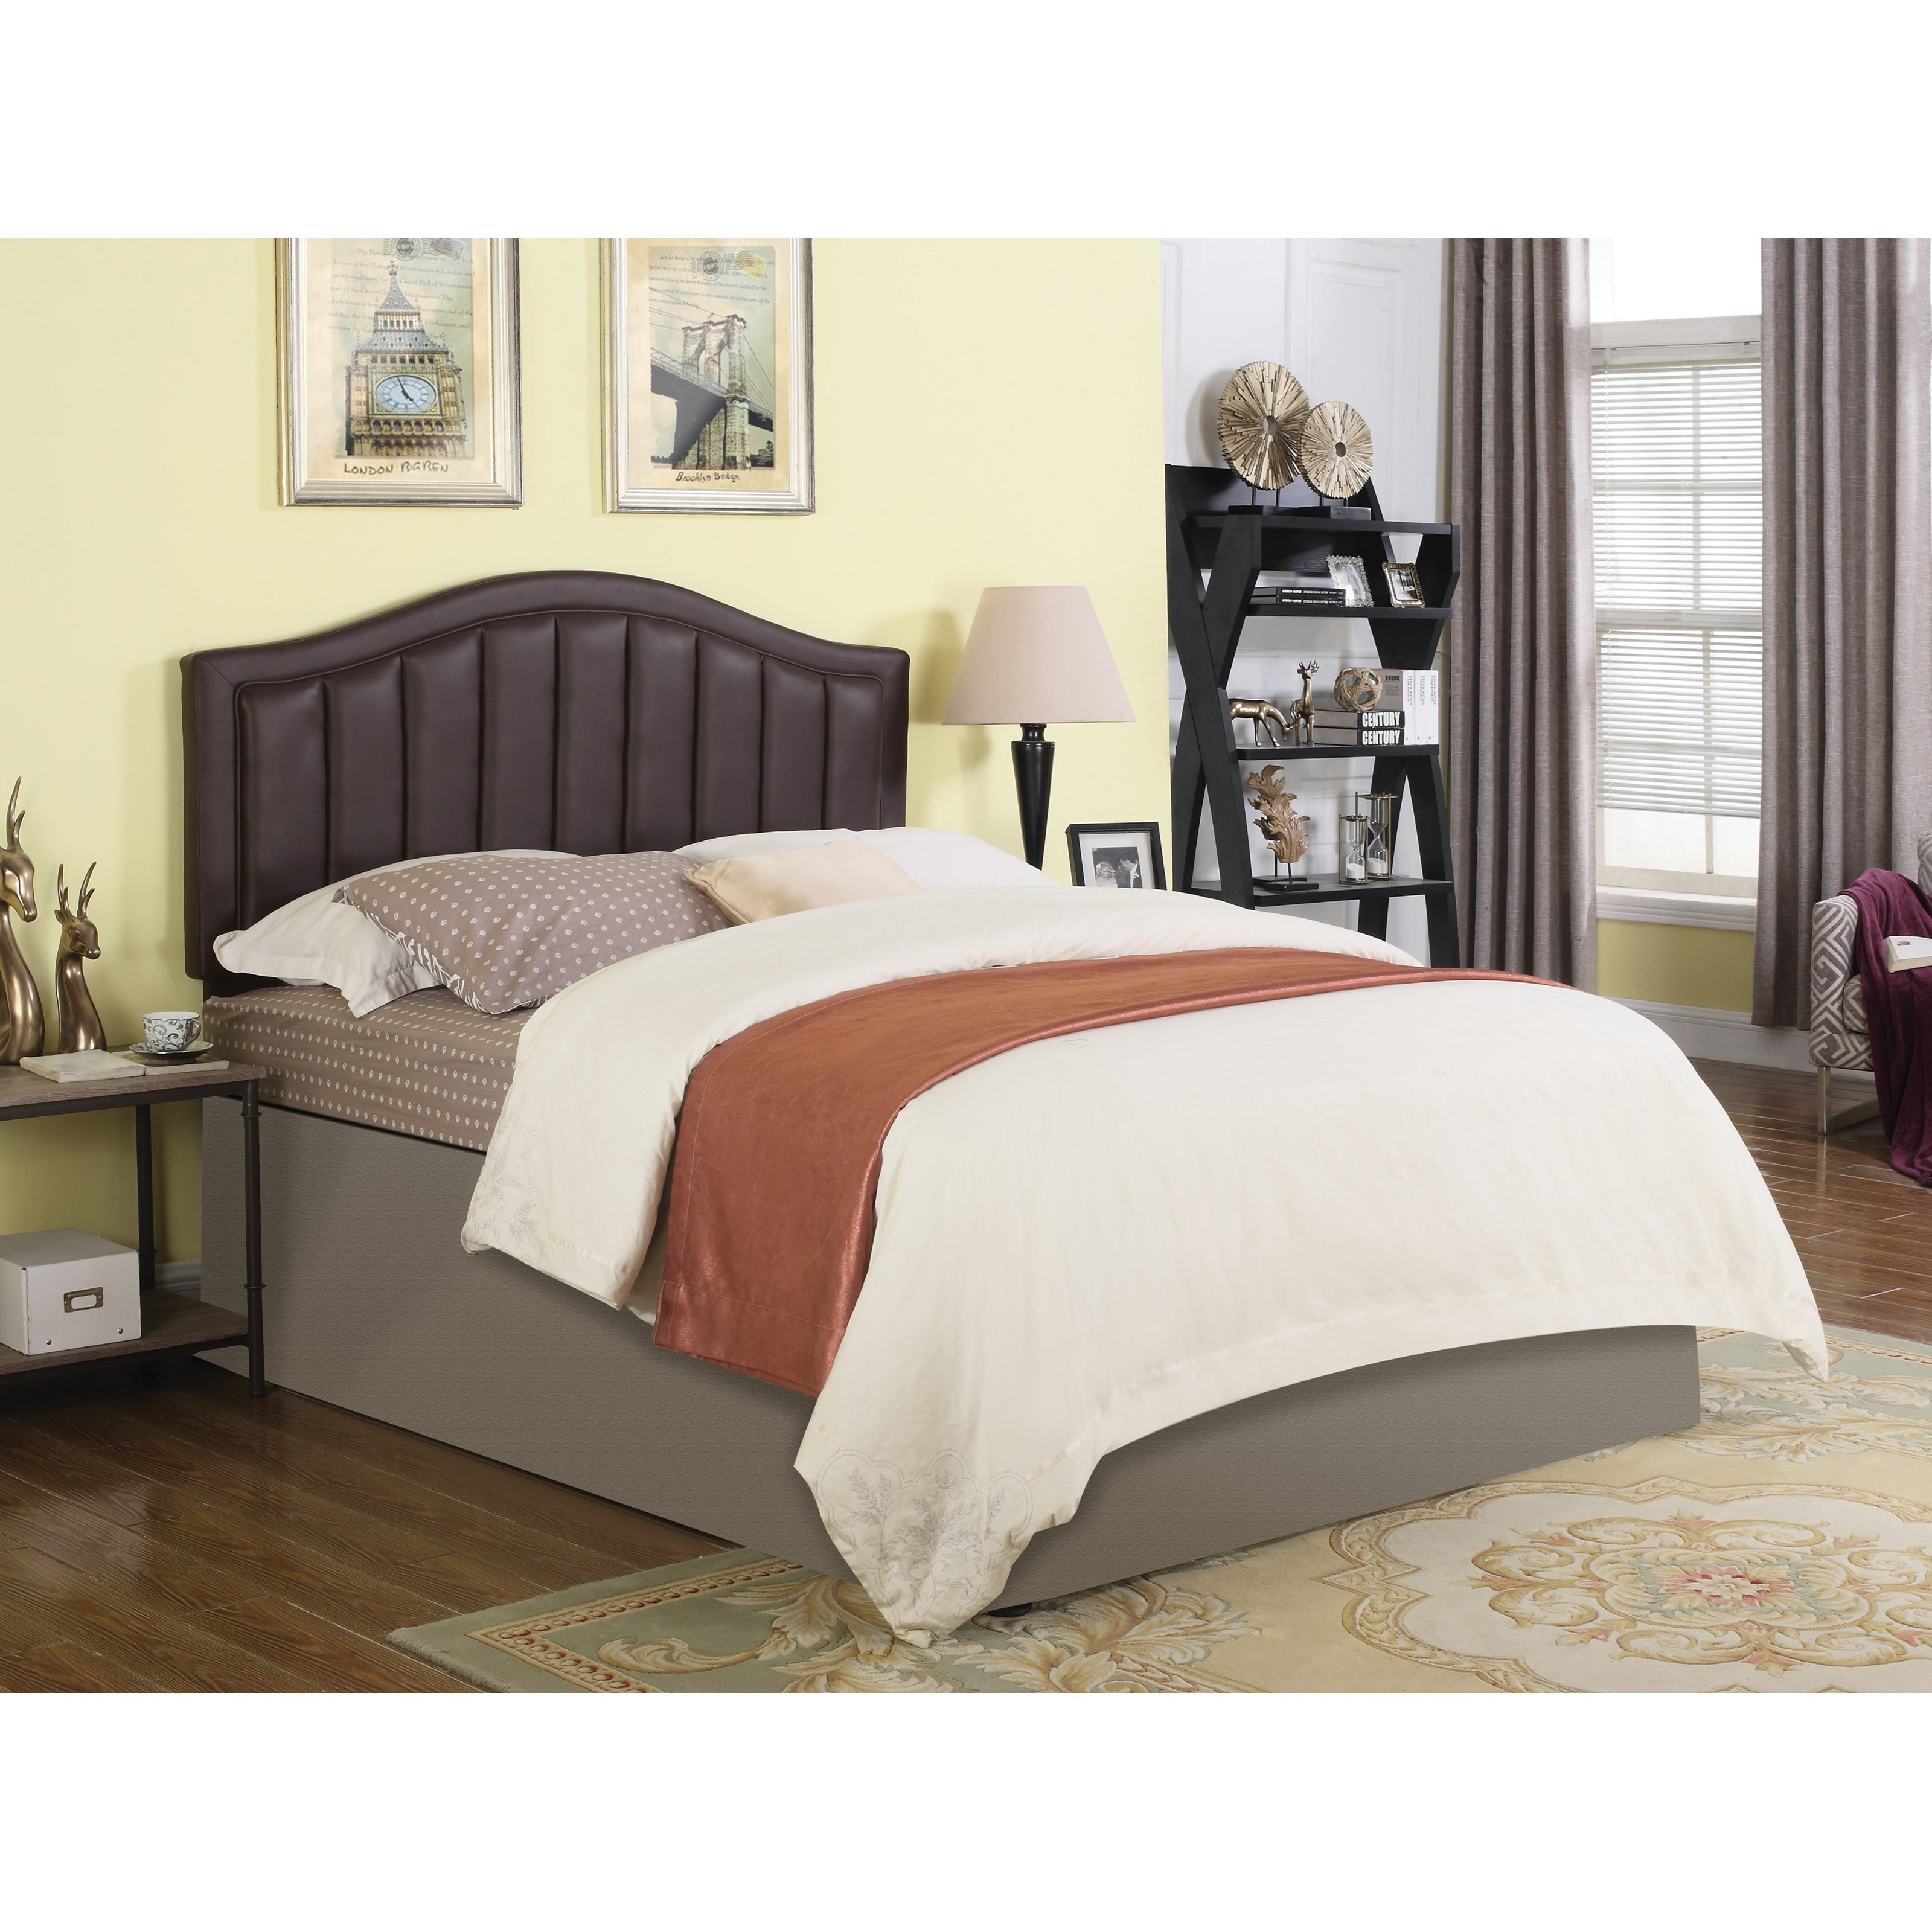 value city headboards coaster upholstered beds upholstered king california king 13709